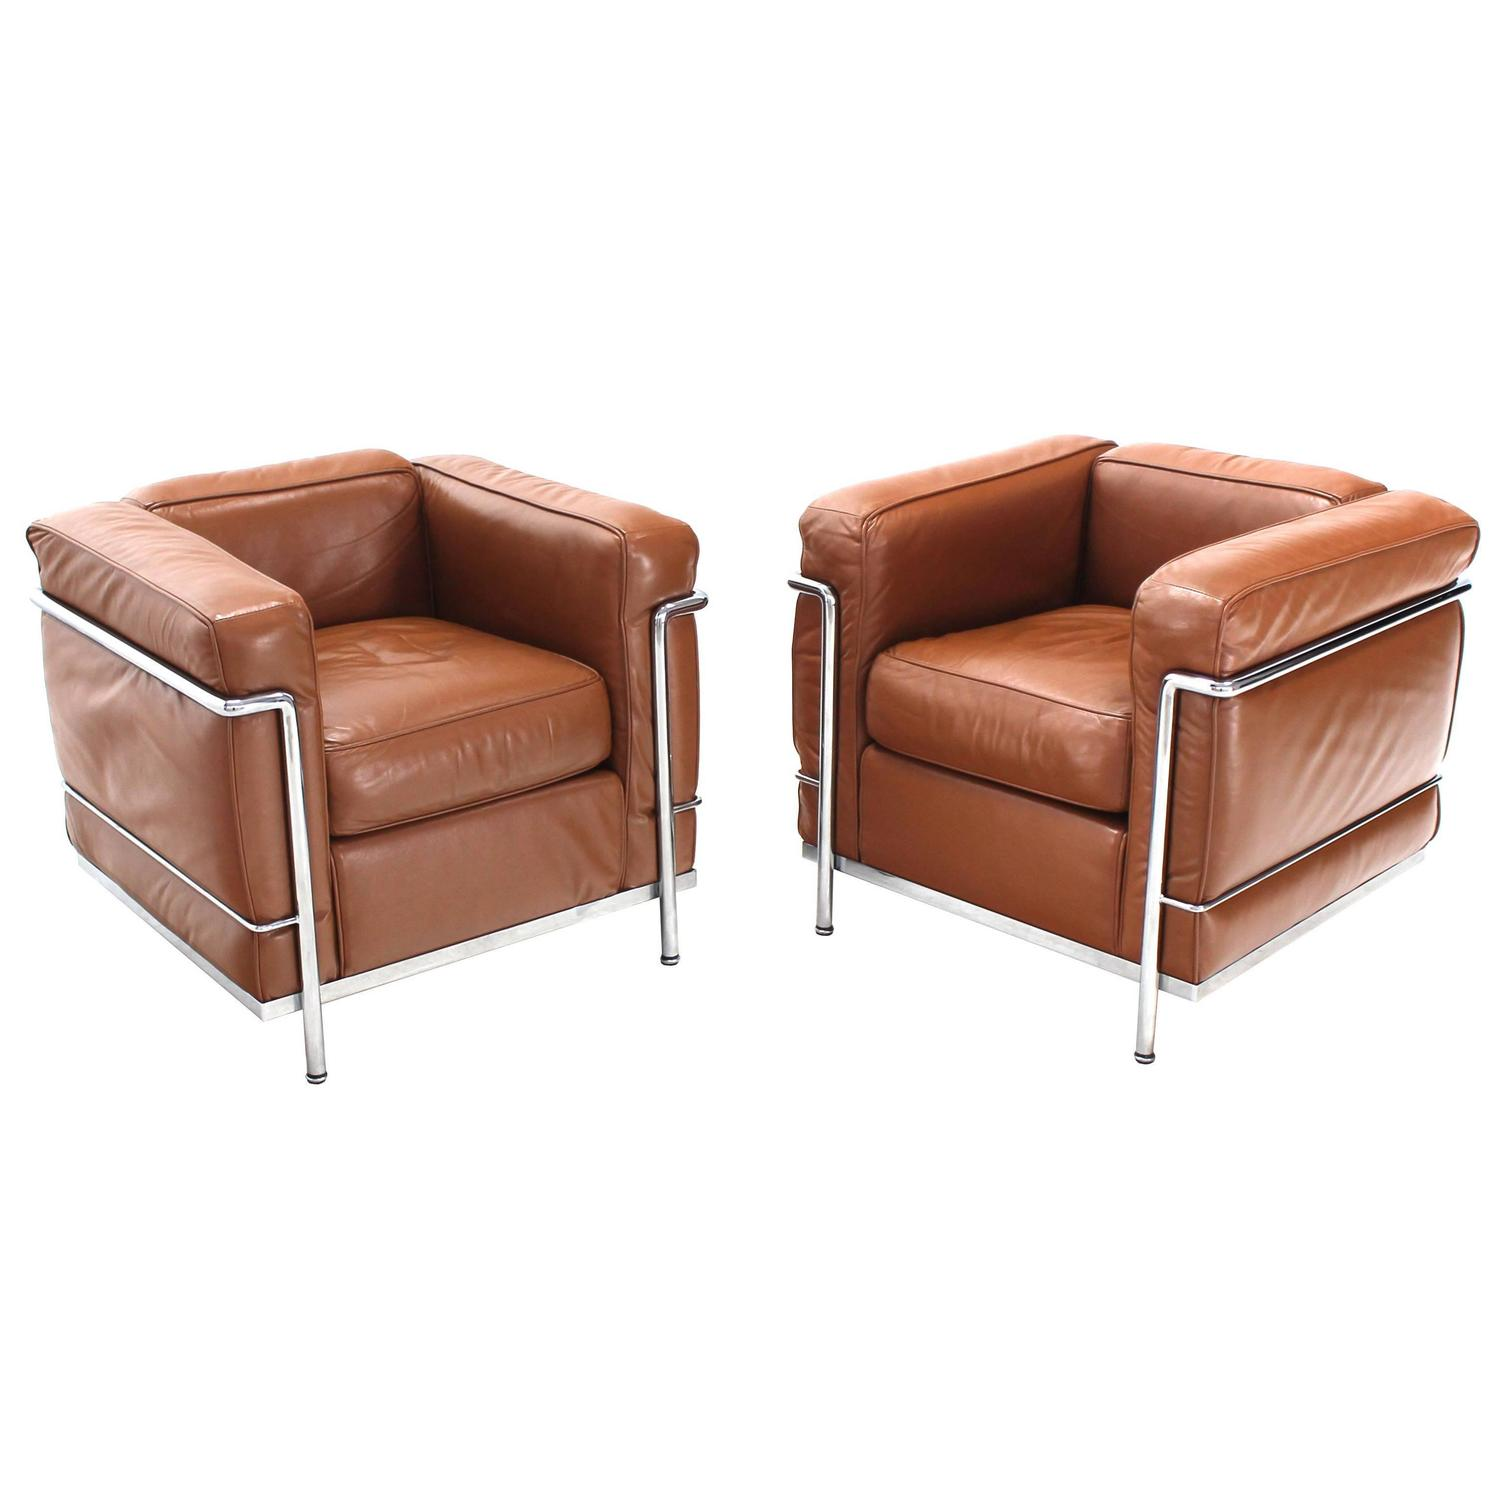 Le corbusier chair vintage - Le Corbusier Lc2 Cassina Brown Leather Pair Of Lounge Chairs